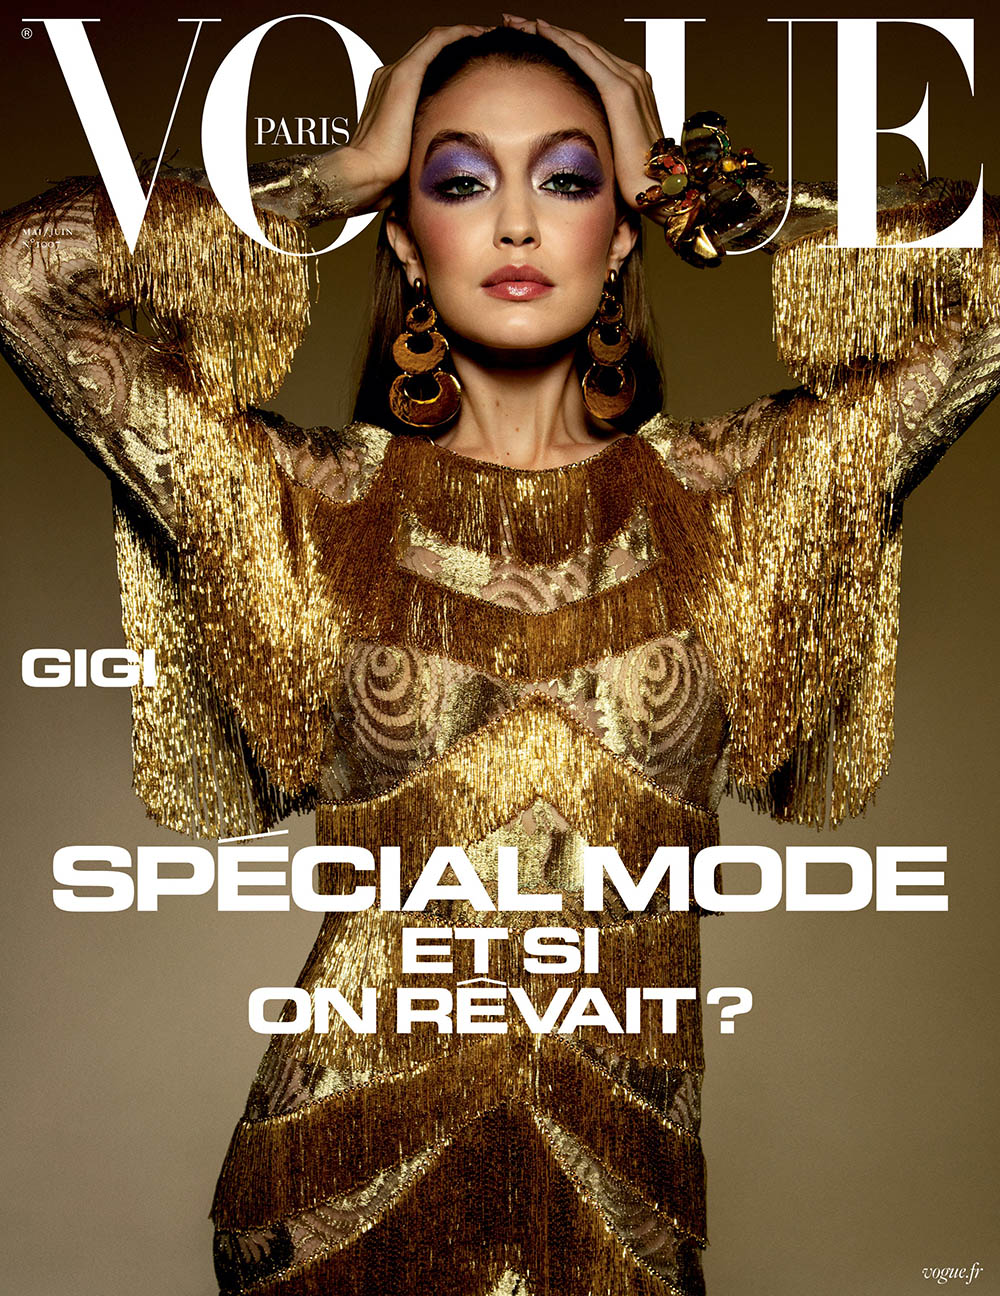 Gigi and Bella Hadid cover Vogue Paris May June 2020 by Inez and Vinoodh